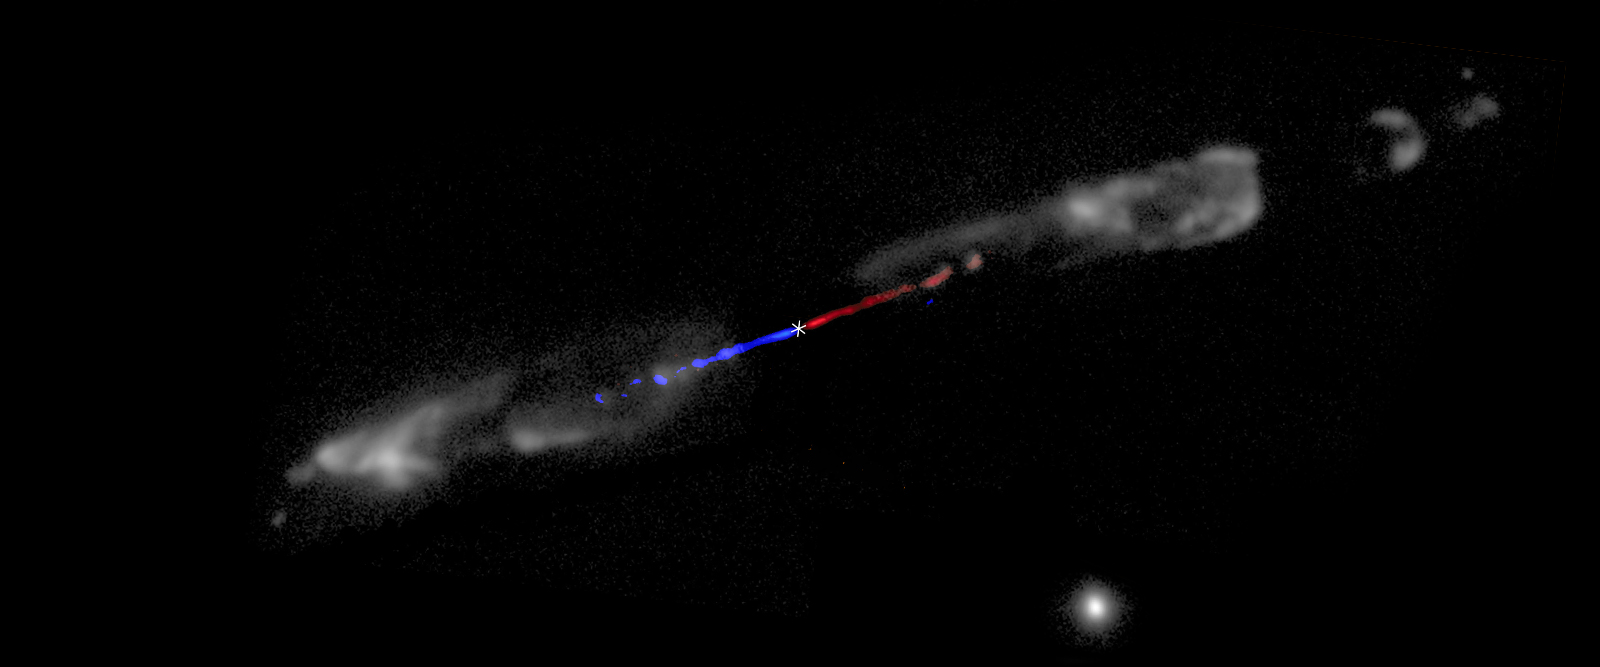 Baby star grows thanks to magnetic fields in jets